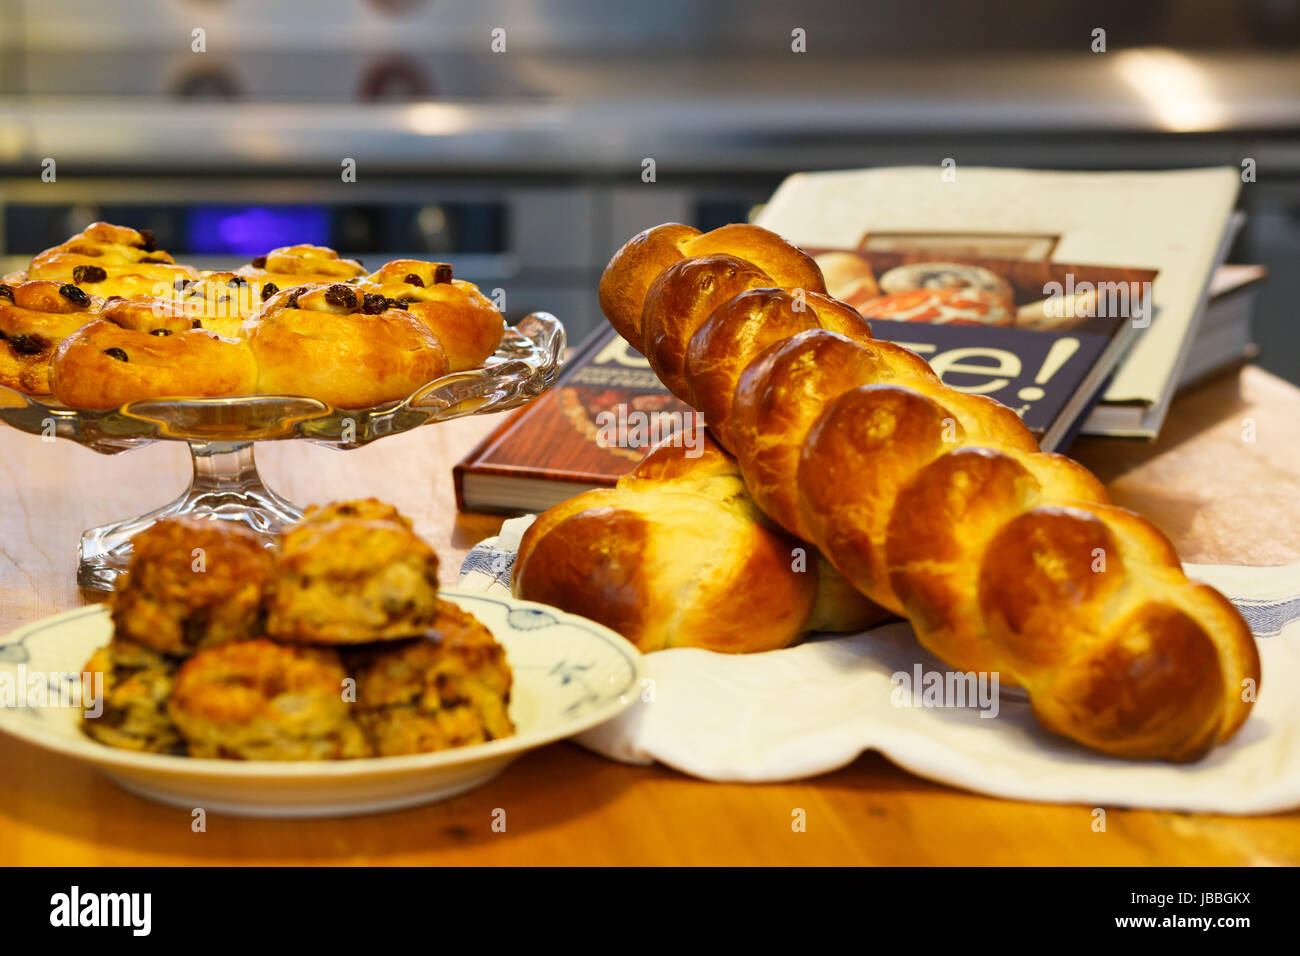 Bakery Items Stock Photos Bakery Items Stock Images Alamy